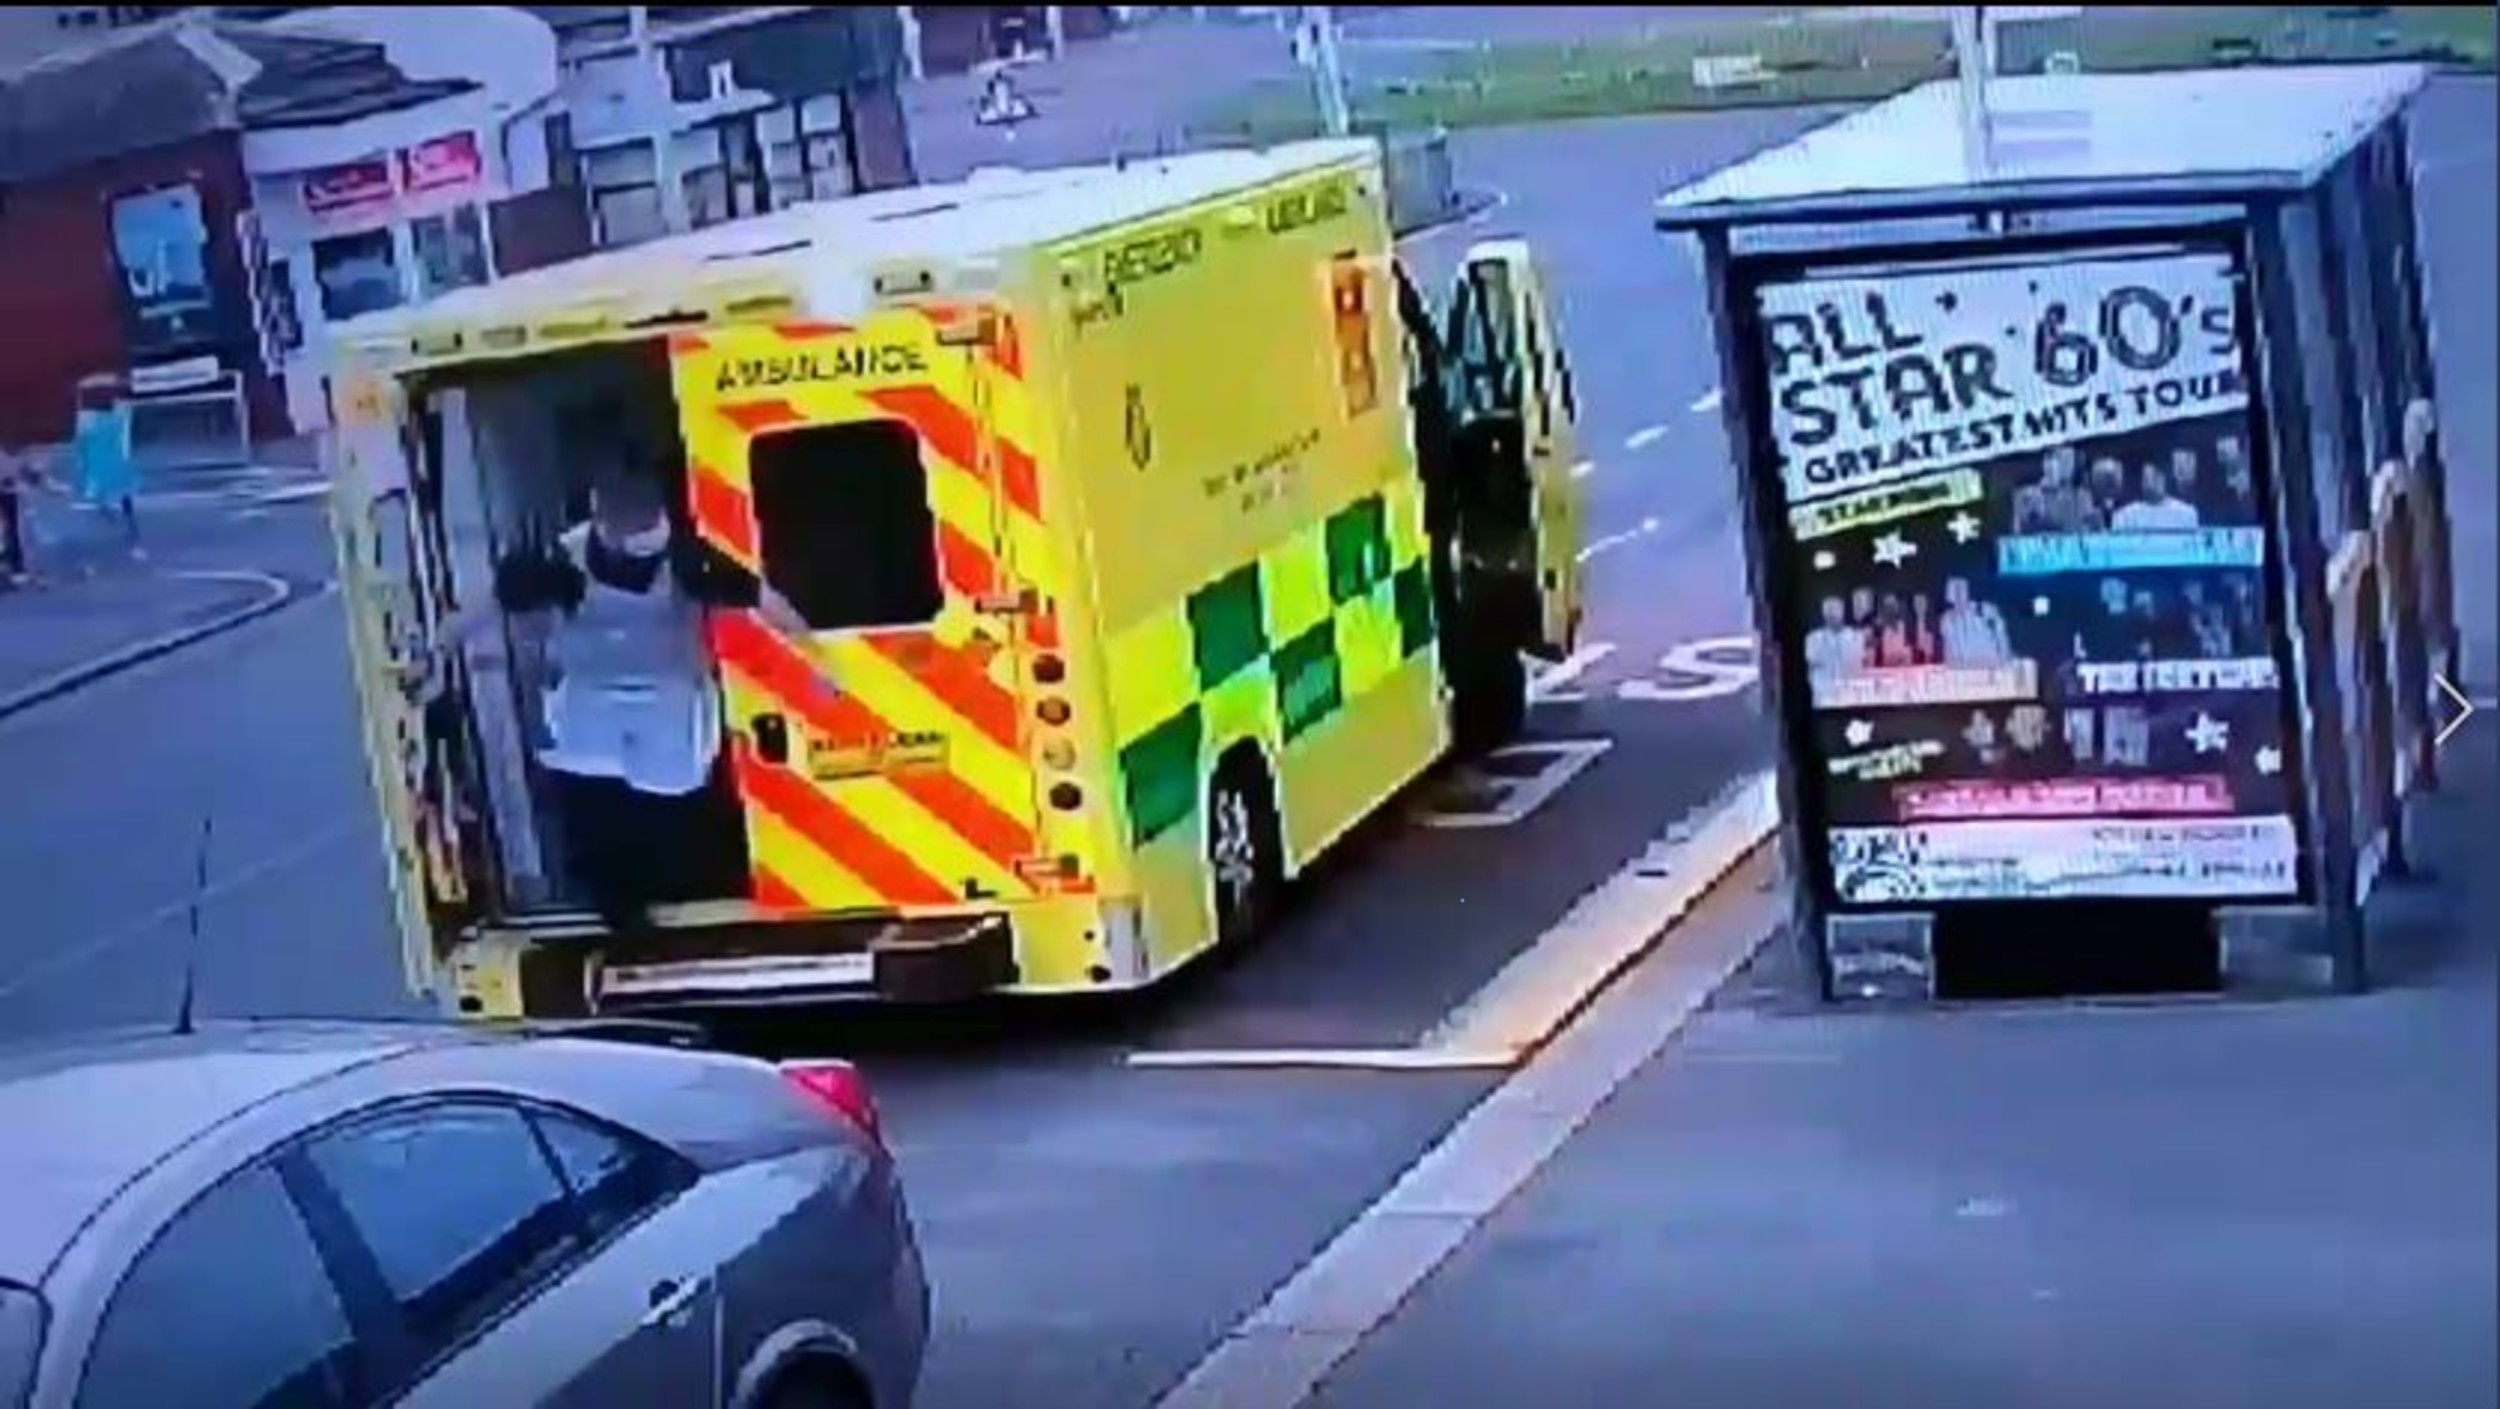 A paramedic explodes out the back doors to confront the man| By Deadline News, Viral Video News